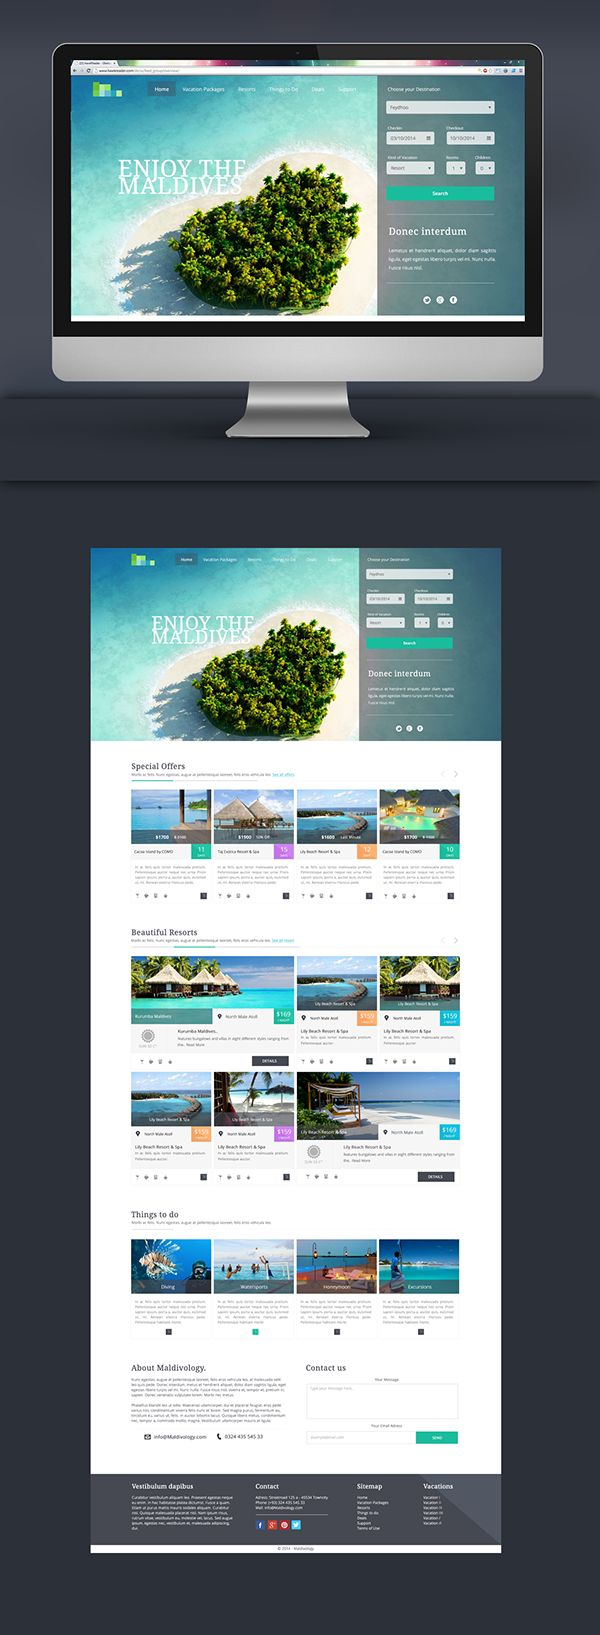 Maldives Vacation Packages - Webdesign on Behance